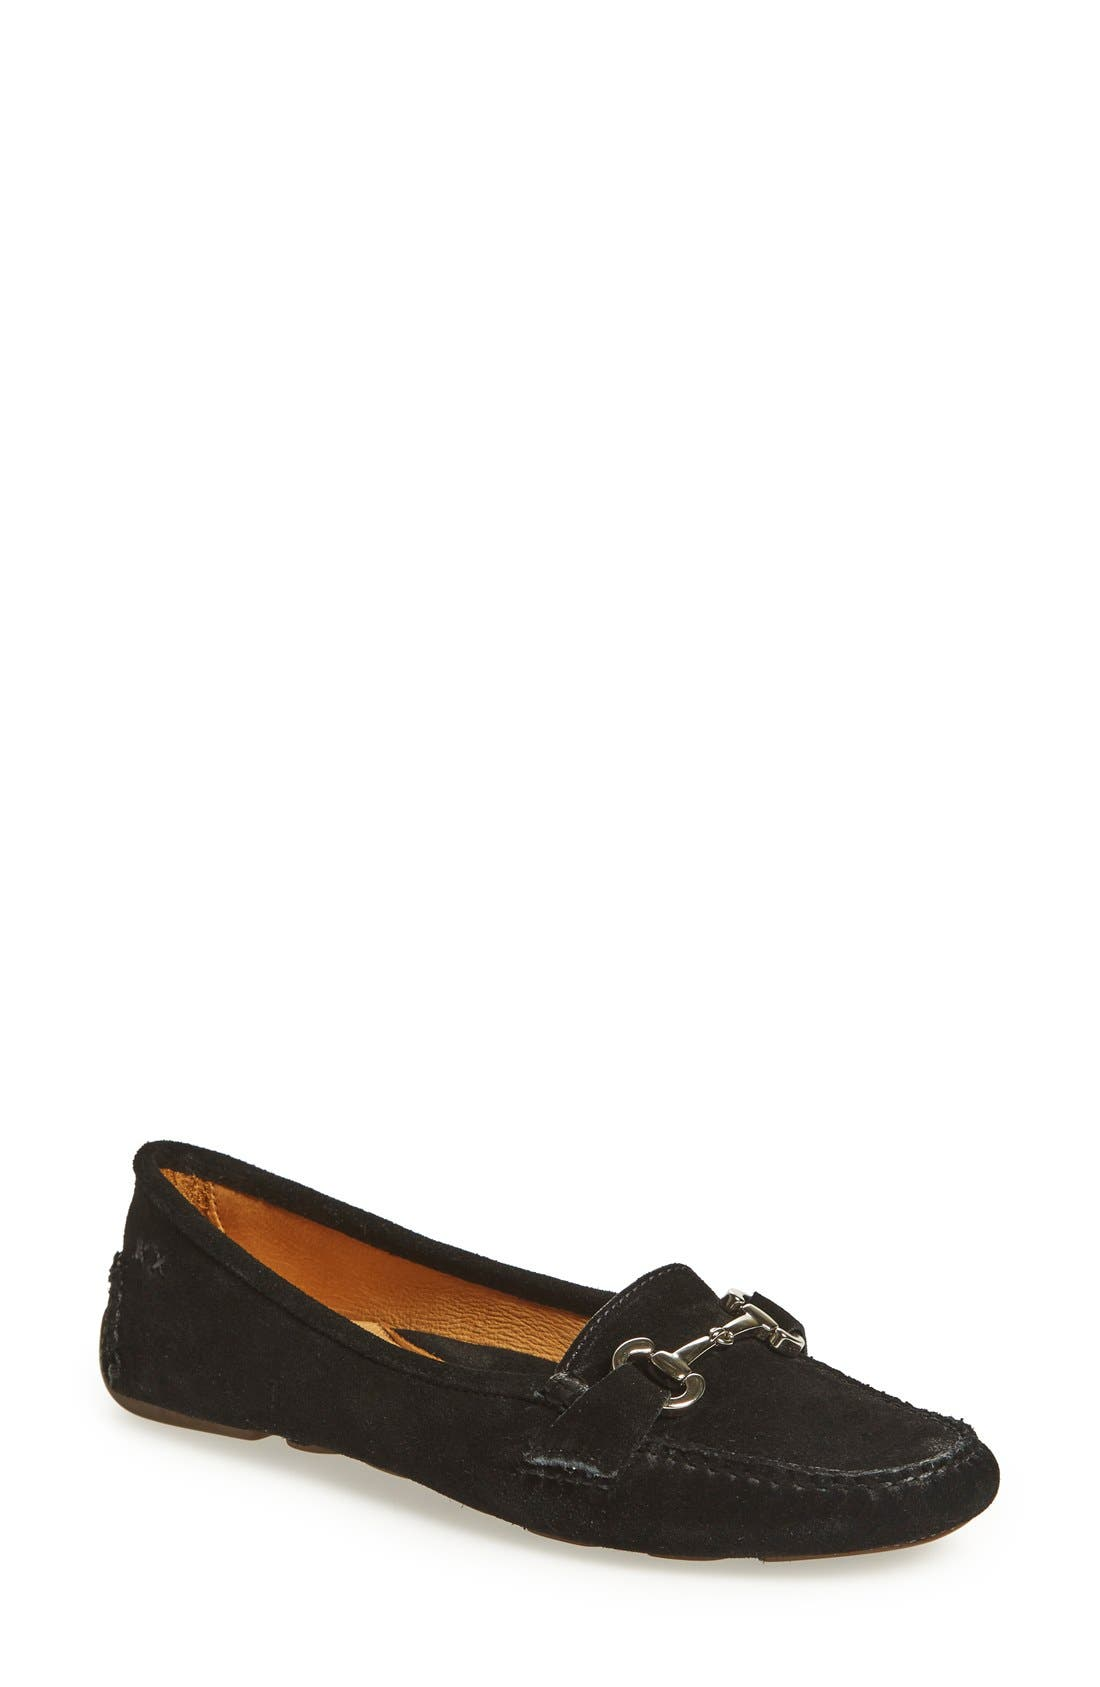 Alternate Image 1 Selected - patricia green 'Carrie' Loafer (Women)